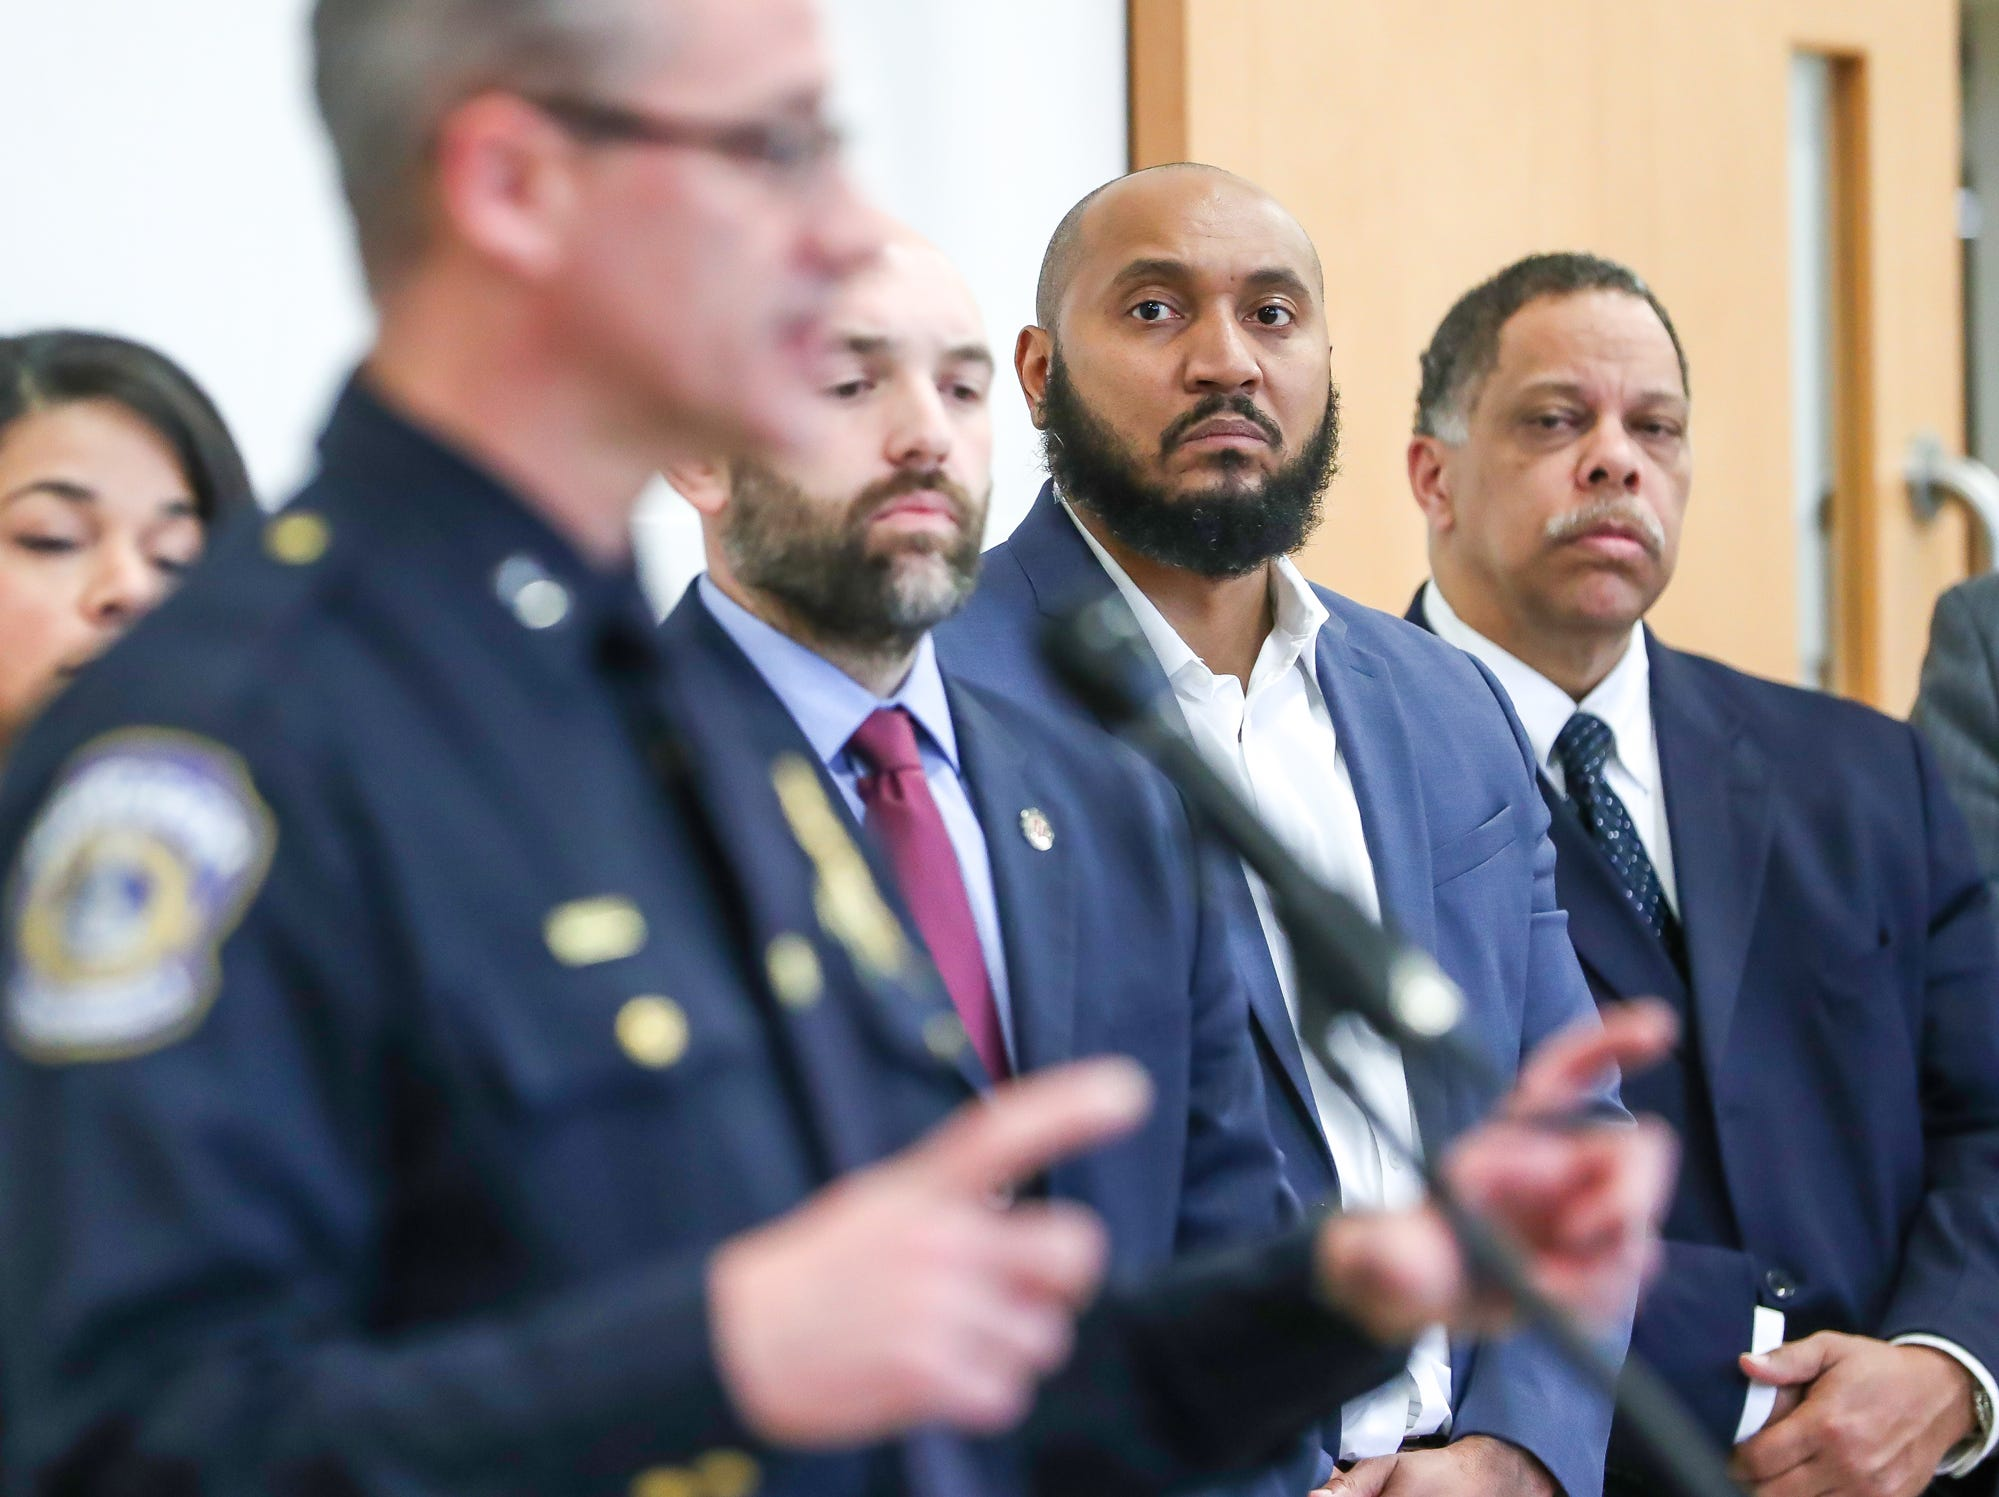 David Hampton (middle right), deputy mayor of neighborhood engagement in Indianapolis, listens as Indianapolis Metropolitan Police Department Chief Bryan Roach speaks about the start of a process to study body worn cameras during a press conference at the Edna Martin Christian Center in Indianapolis on Monday, Feb. 4, 2019.